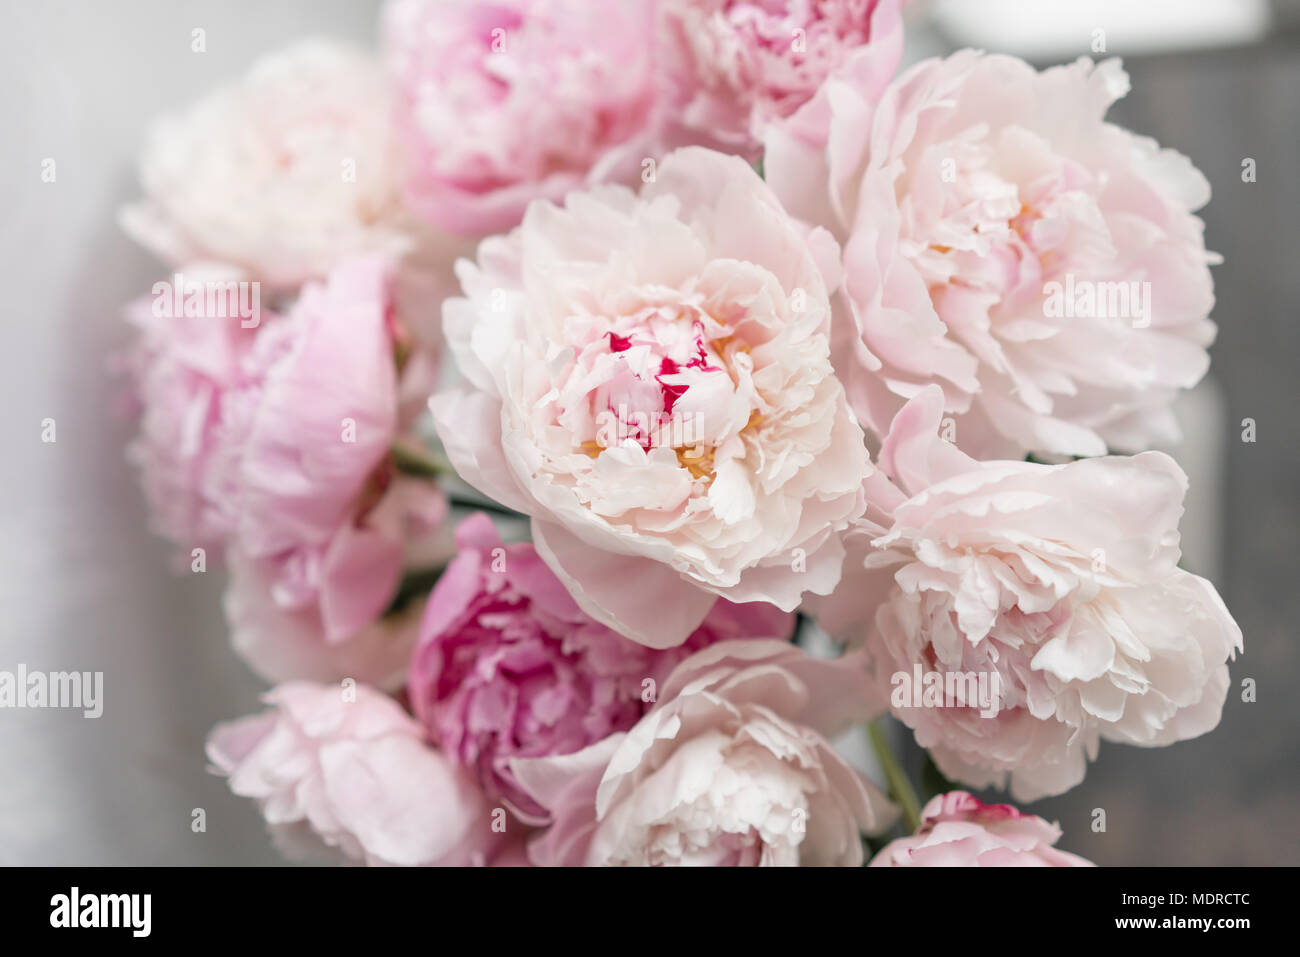 cute and lovely peony. many layered petals. bunch pale pink peonies